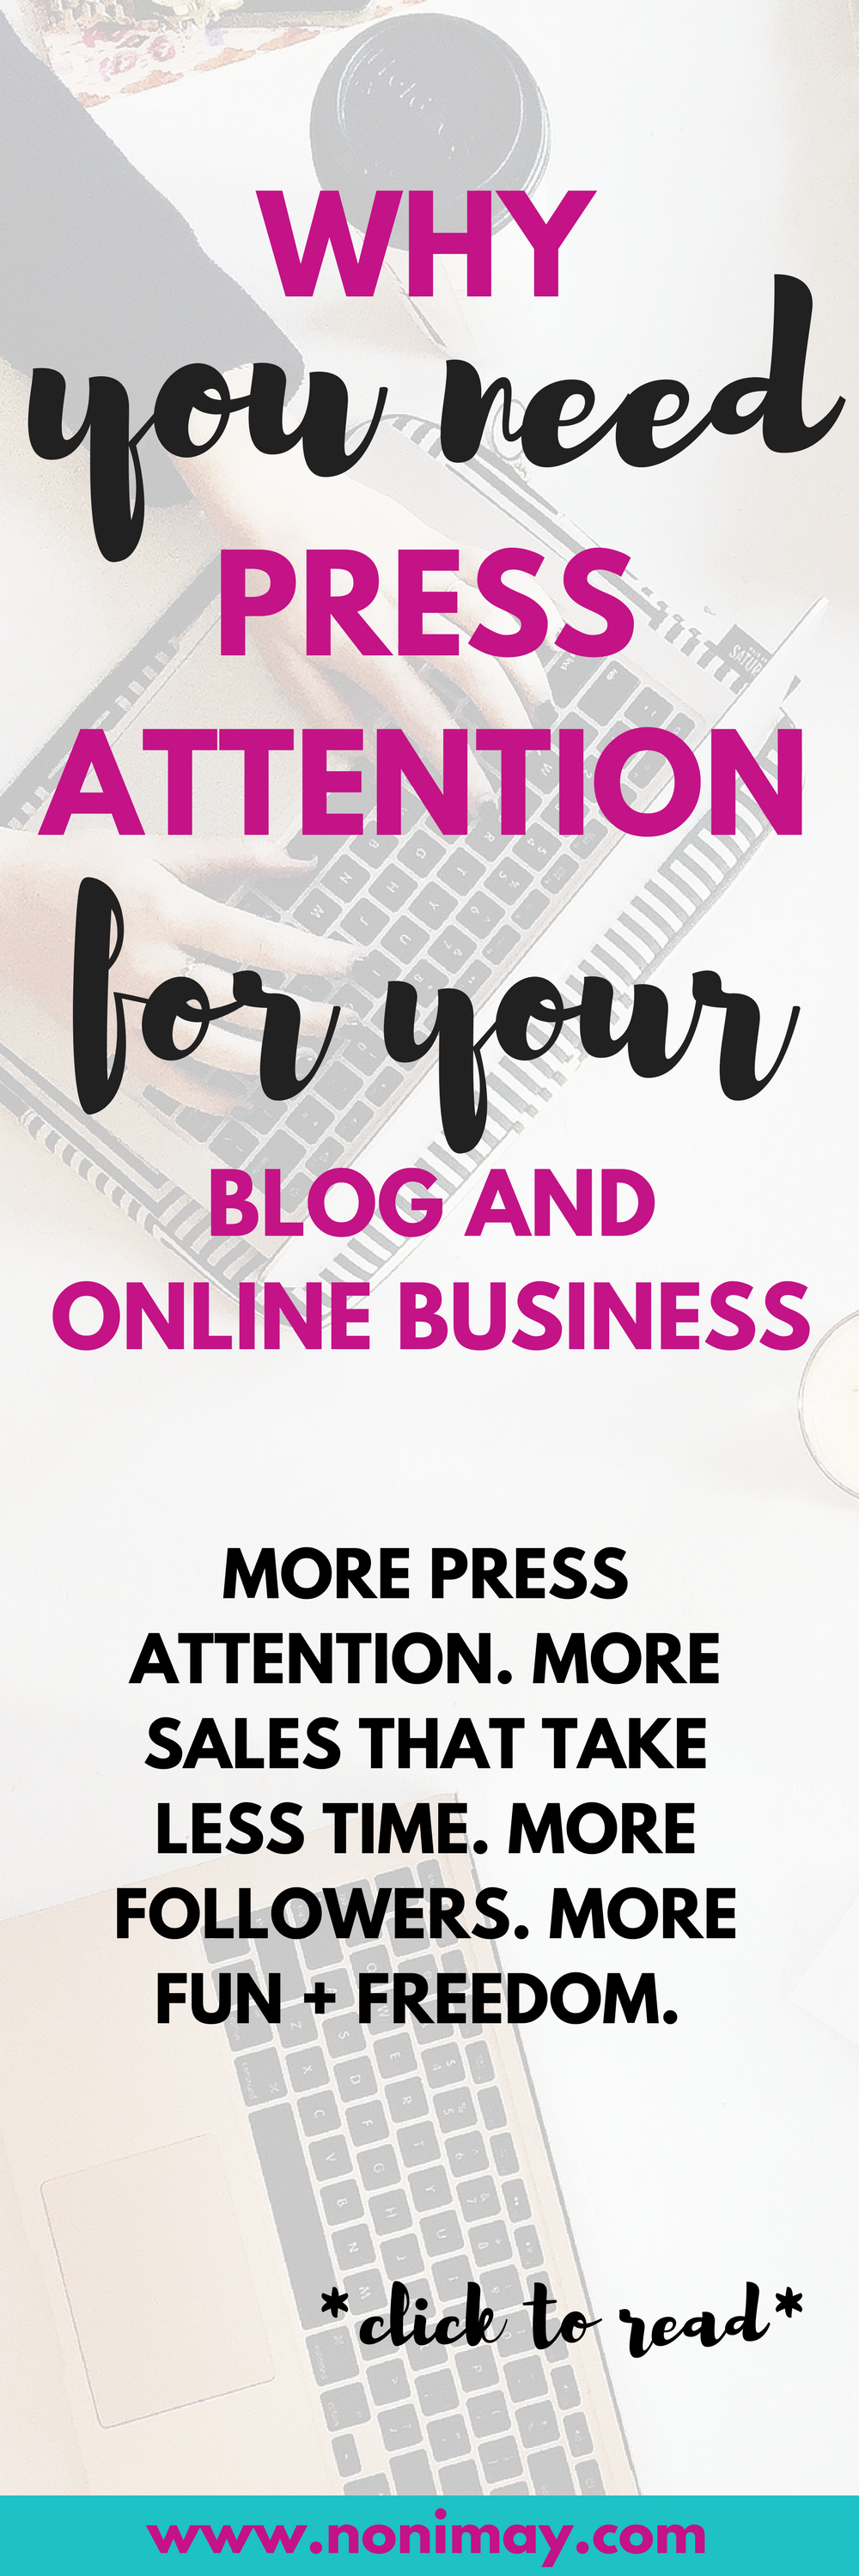 Why you need press attention for yor blog and business